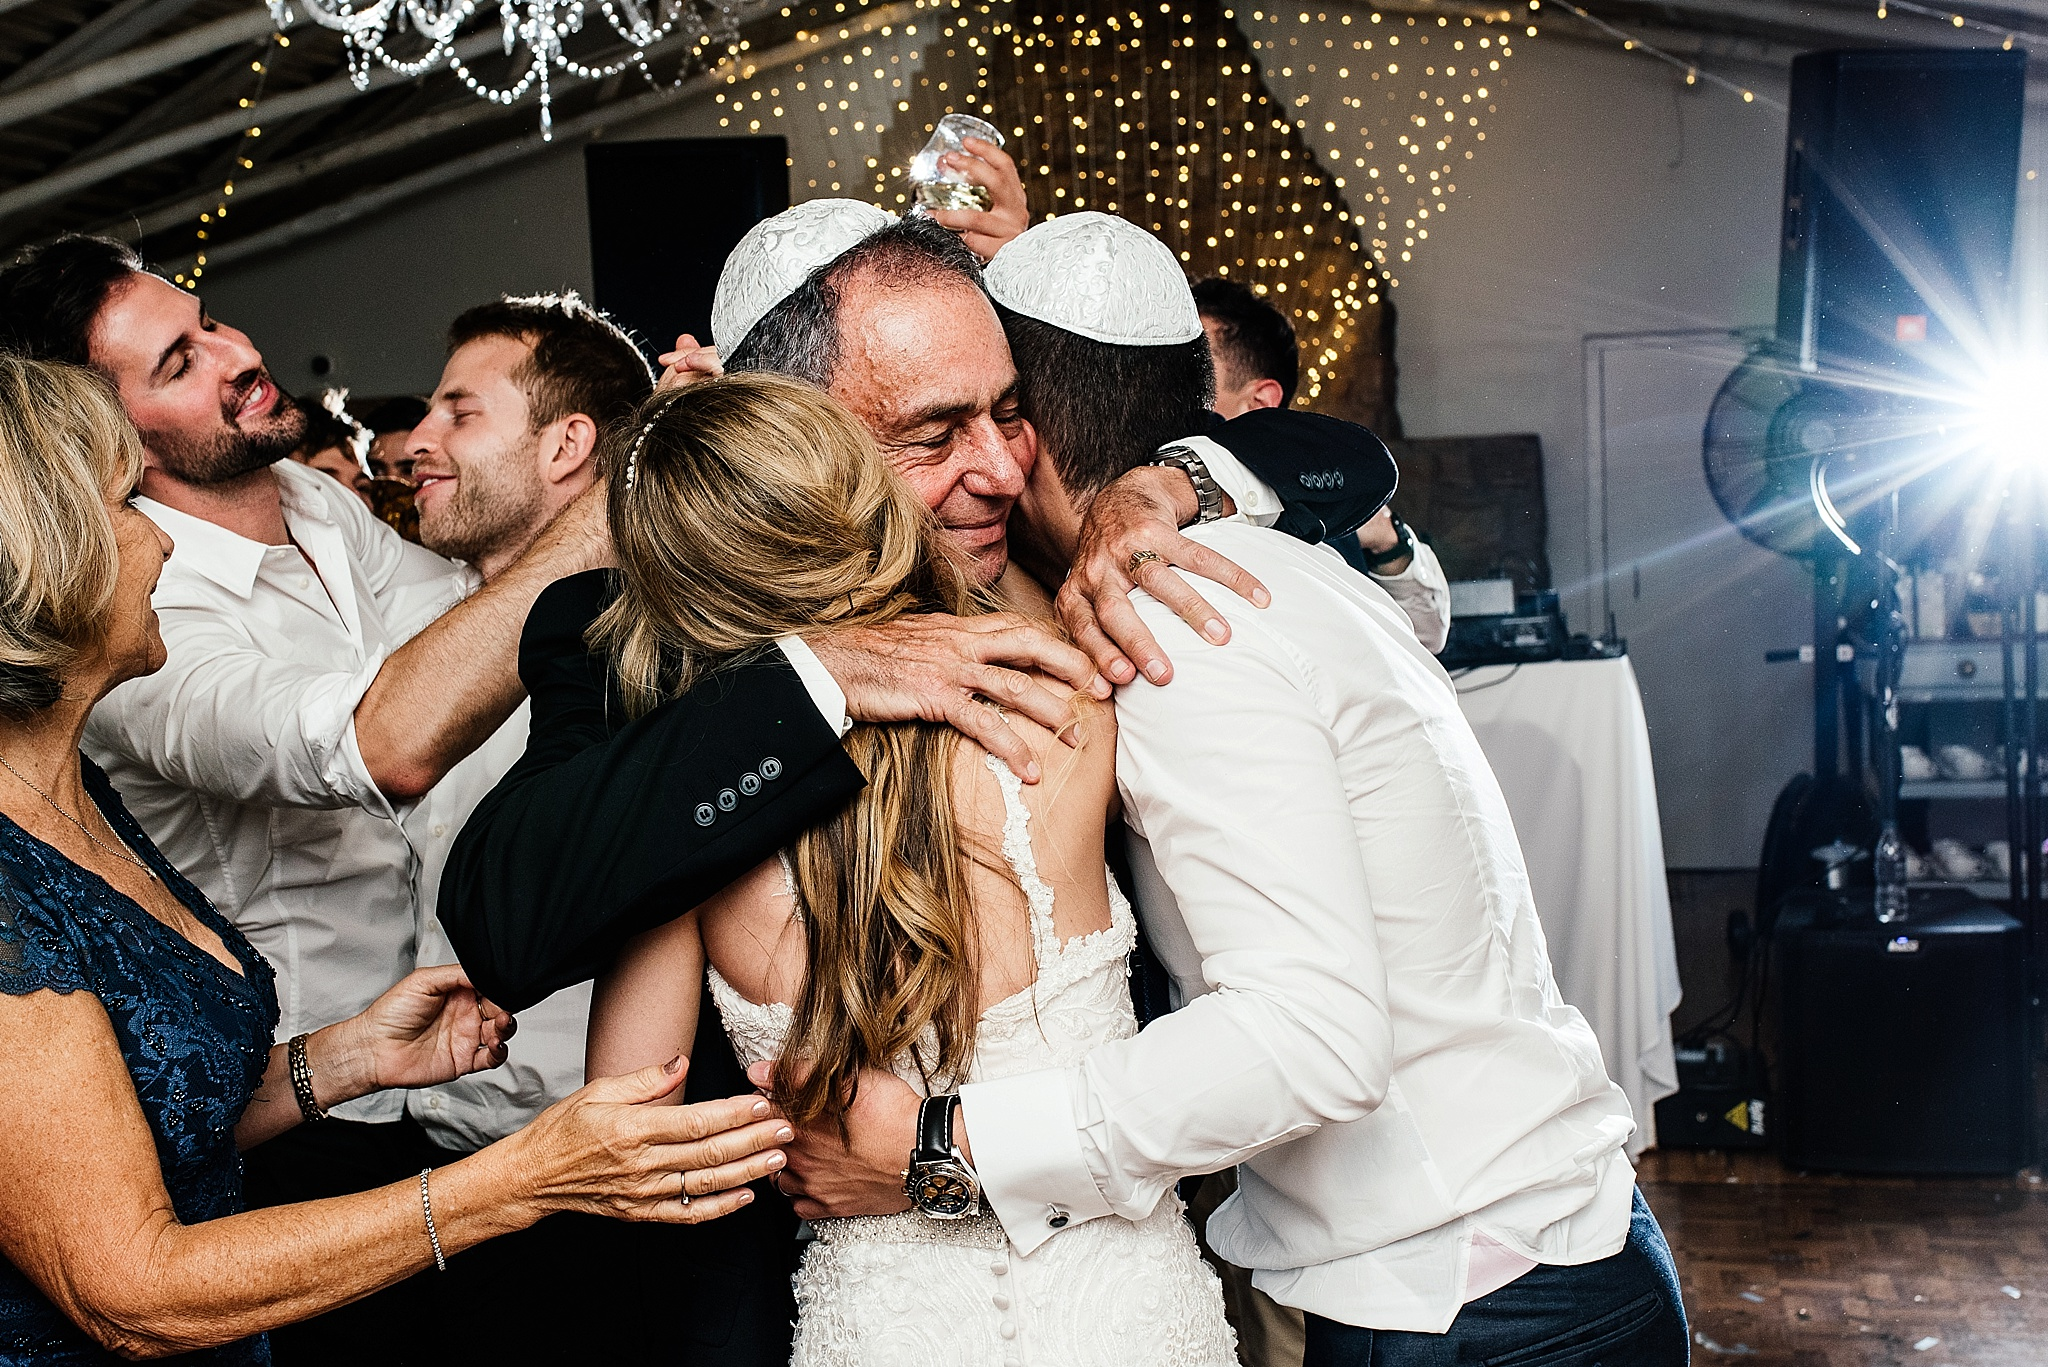 Cape Town Wedding Photographer Darren Bester - SuikerBossie - Stephen and Mikaela_0074.jpg